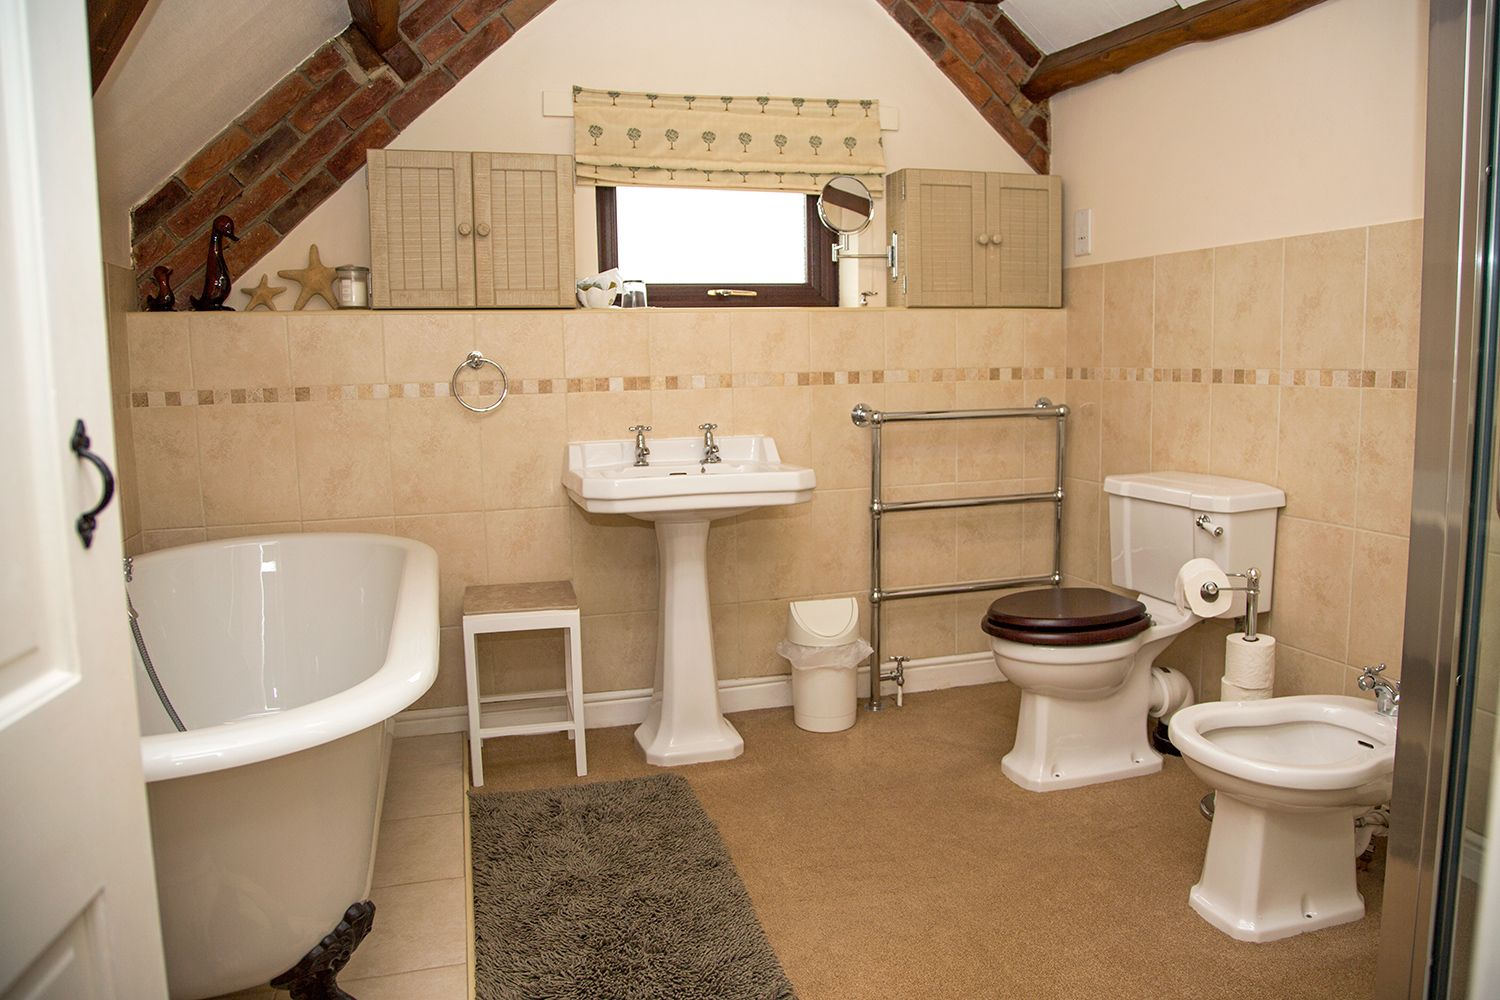 En suite bathroom at Old Hathern Station B&B